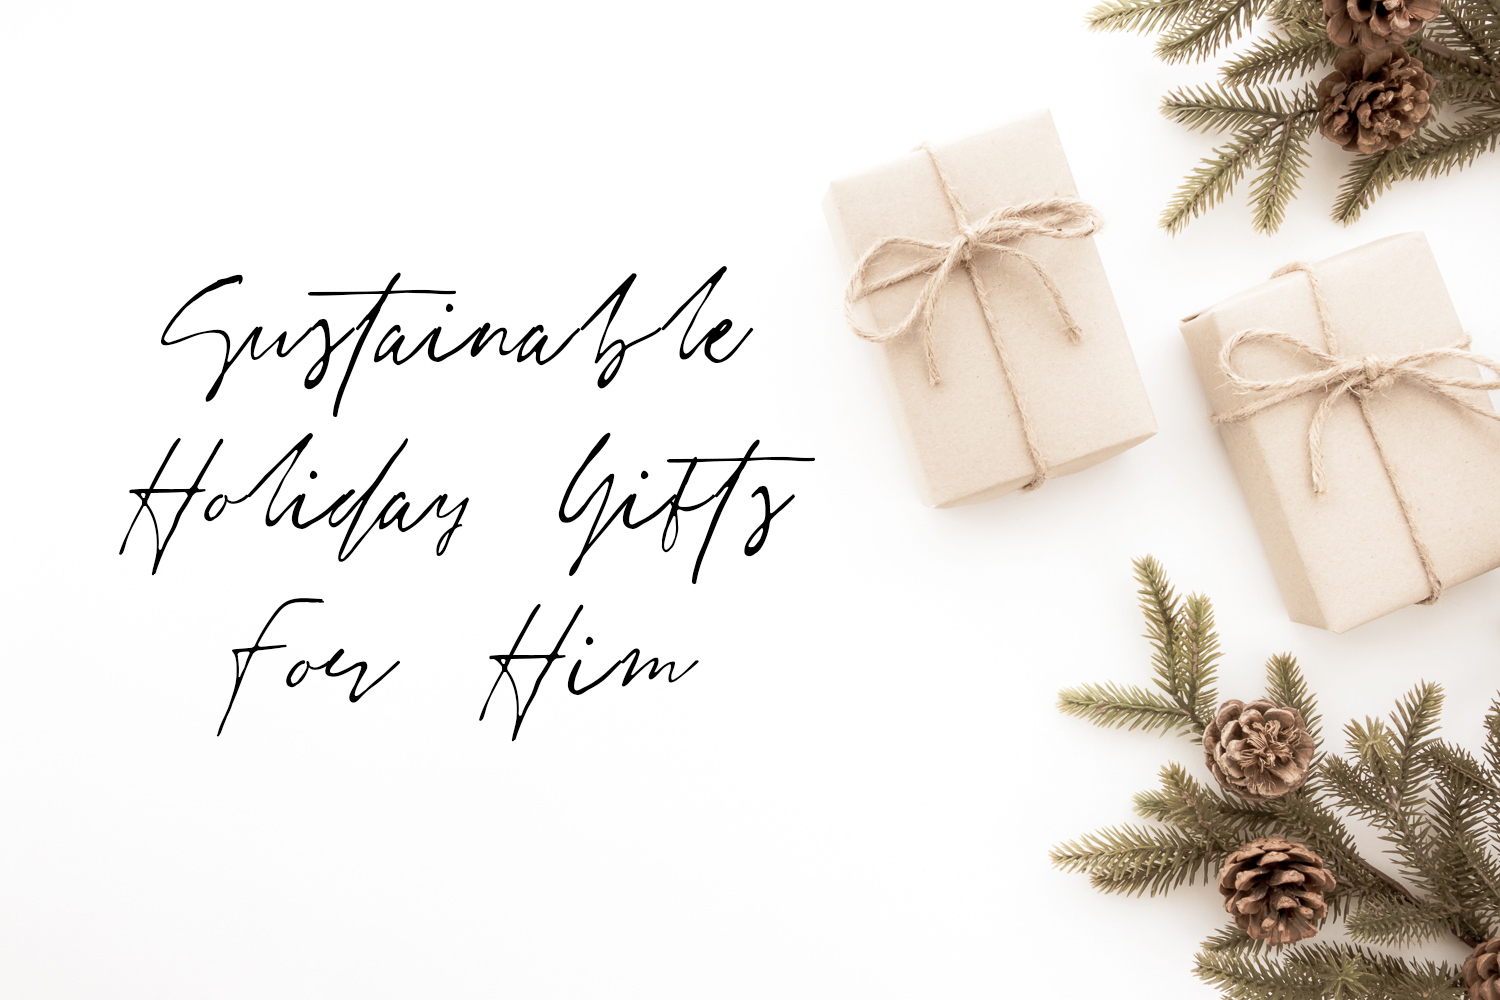 The Sustainable Holiday Gift Guides: Gifts for Him